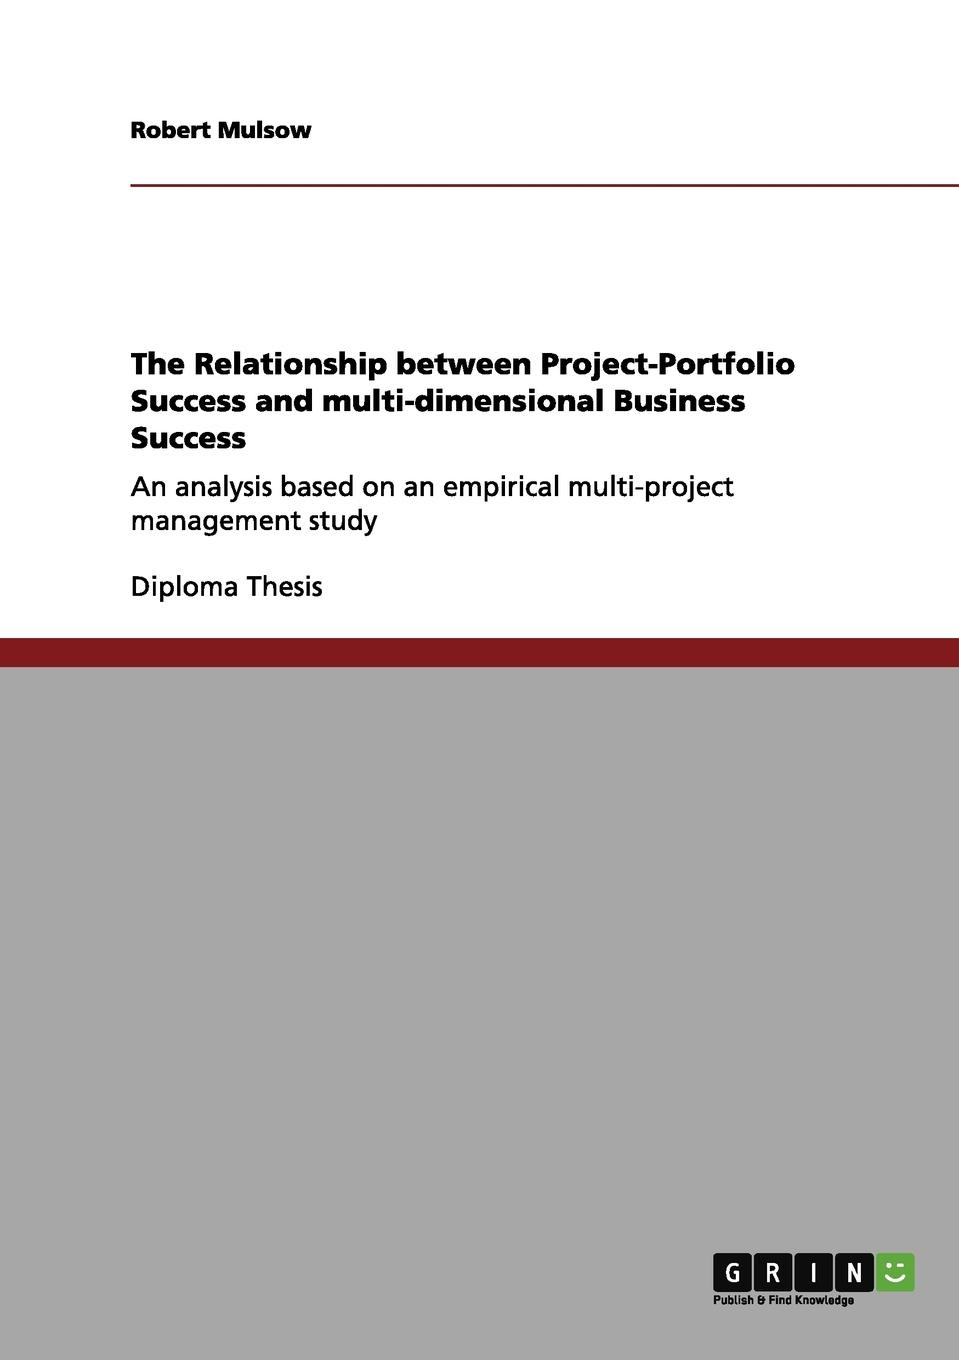 Robert Mulsow The Relationship between Project-Portfolio Success and multi-dimensional Business Success george eckes six sigma team dynamics the elusive key to project success